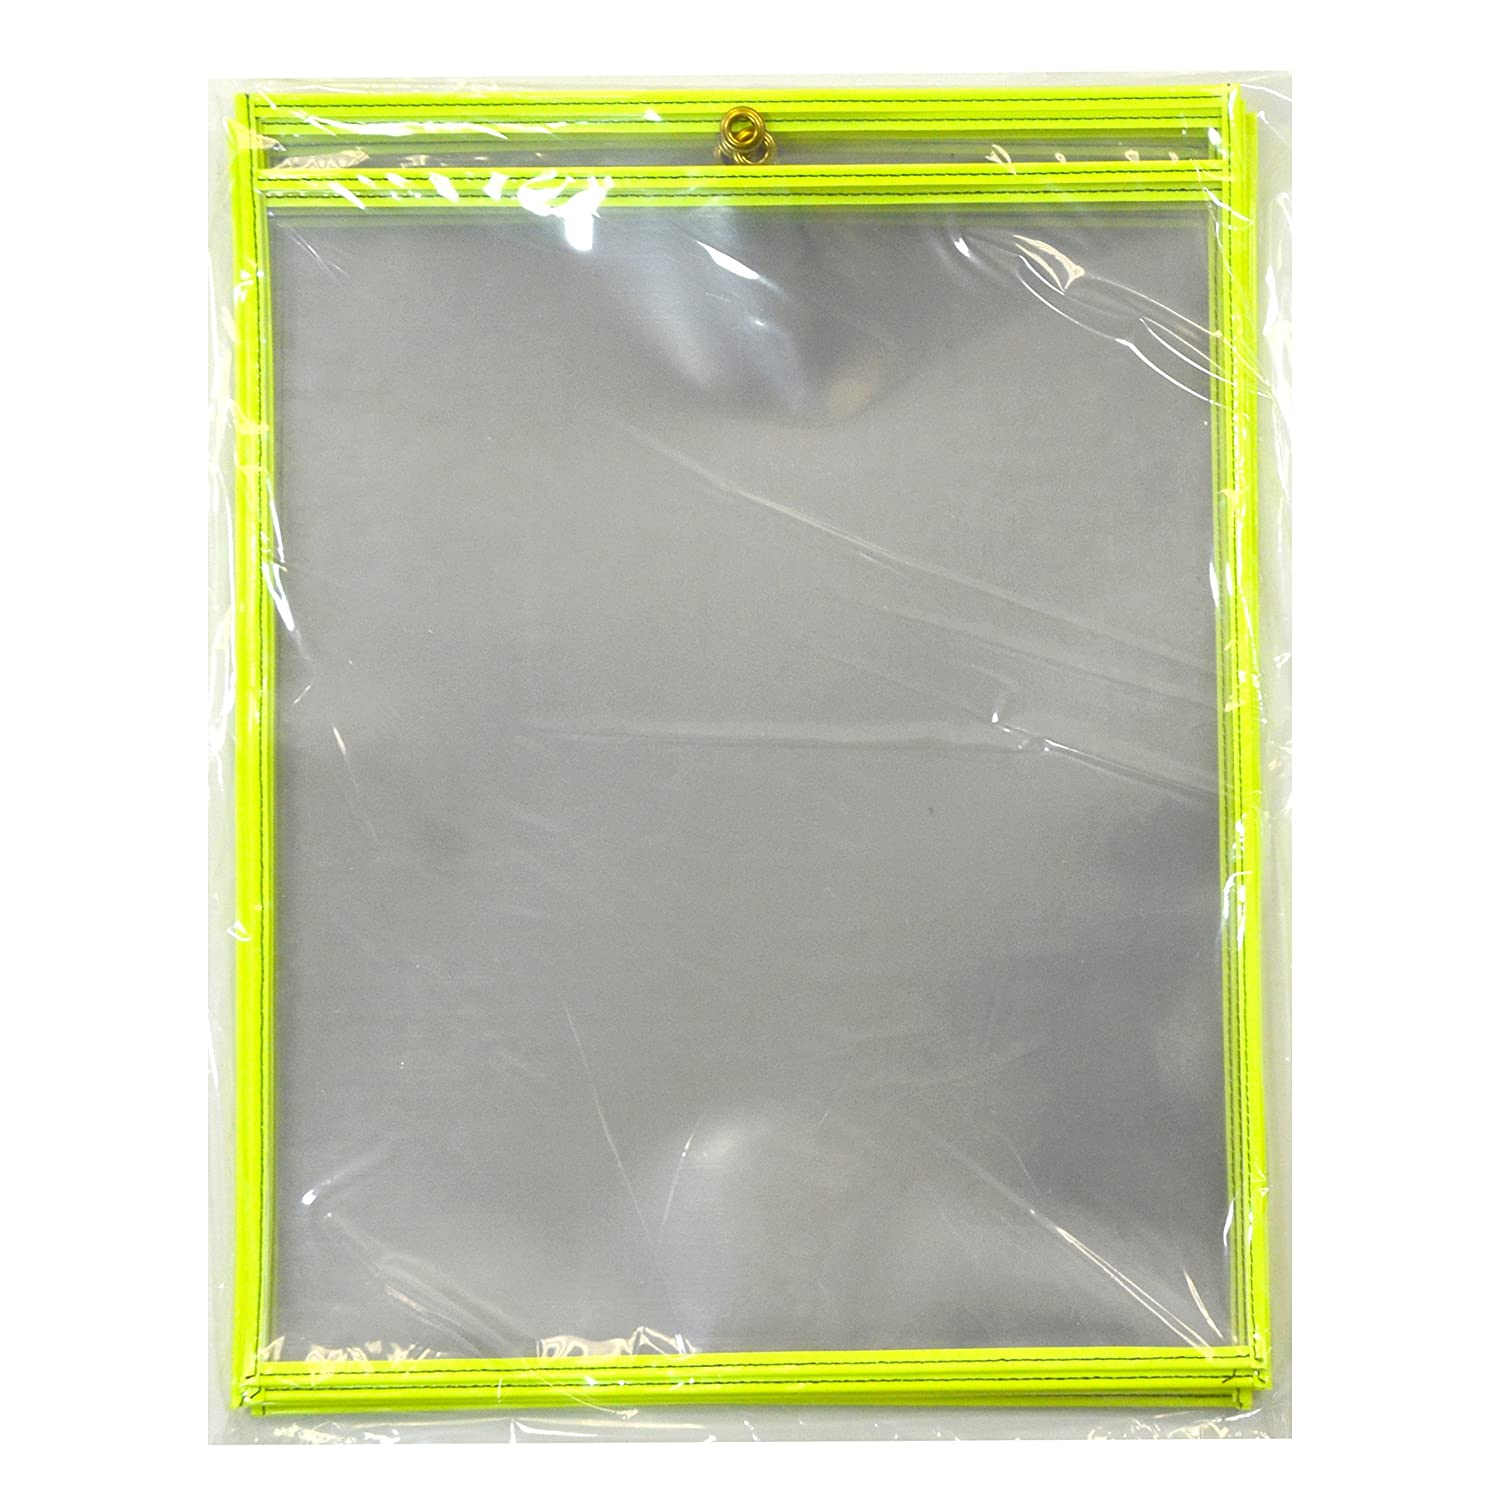 C-Line Stitched Shop Ticket Holders, Both Sides Clear, 11 x 17, 10 per Pack, Neon Green (40465) 11 x 17 C-Line Products Inc.